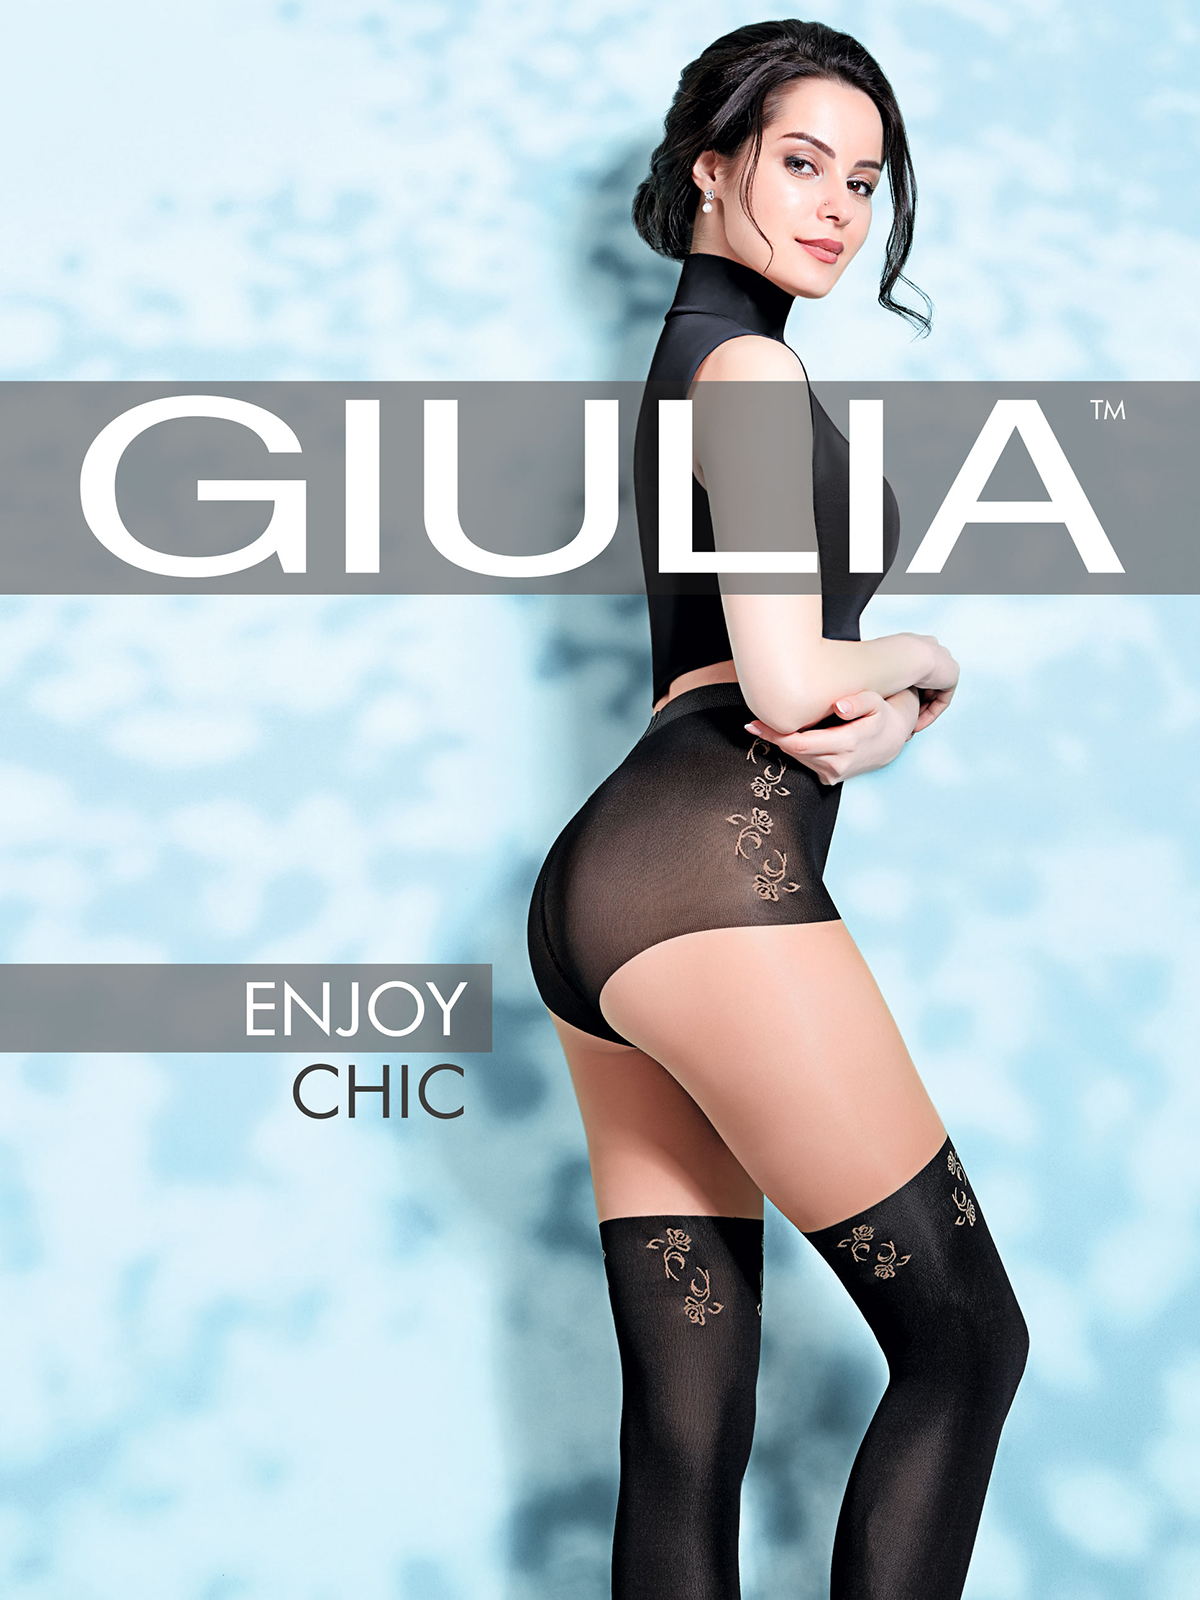 Giulia Enjoy Chic